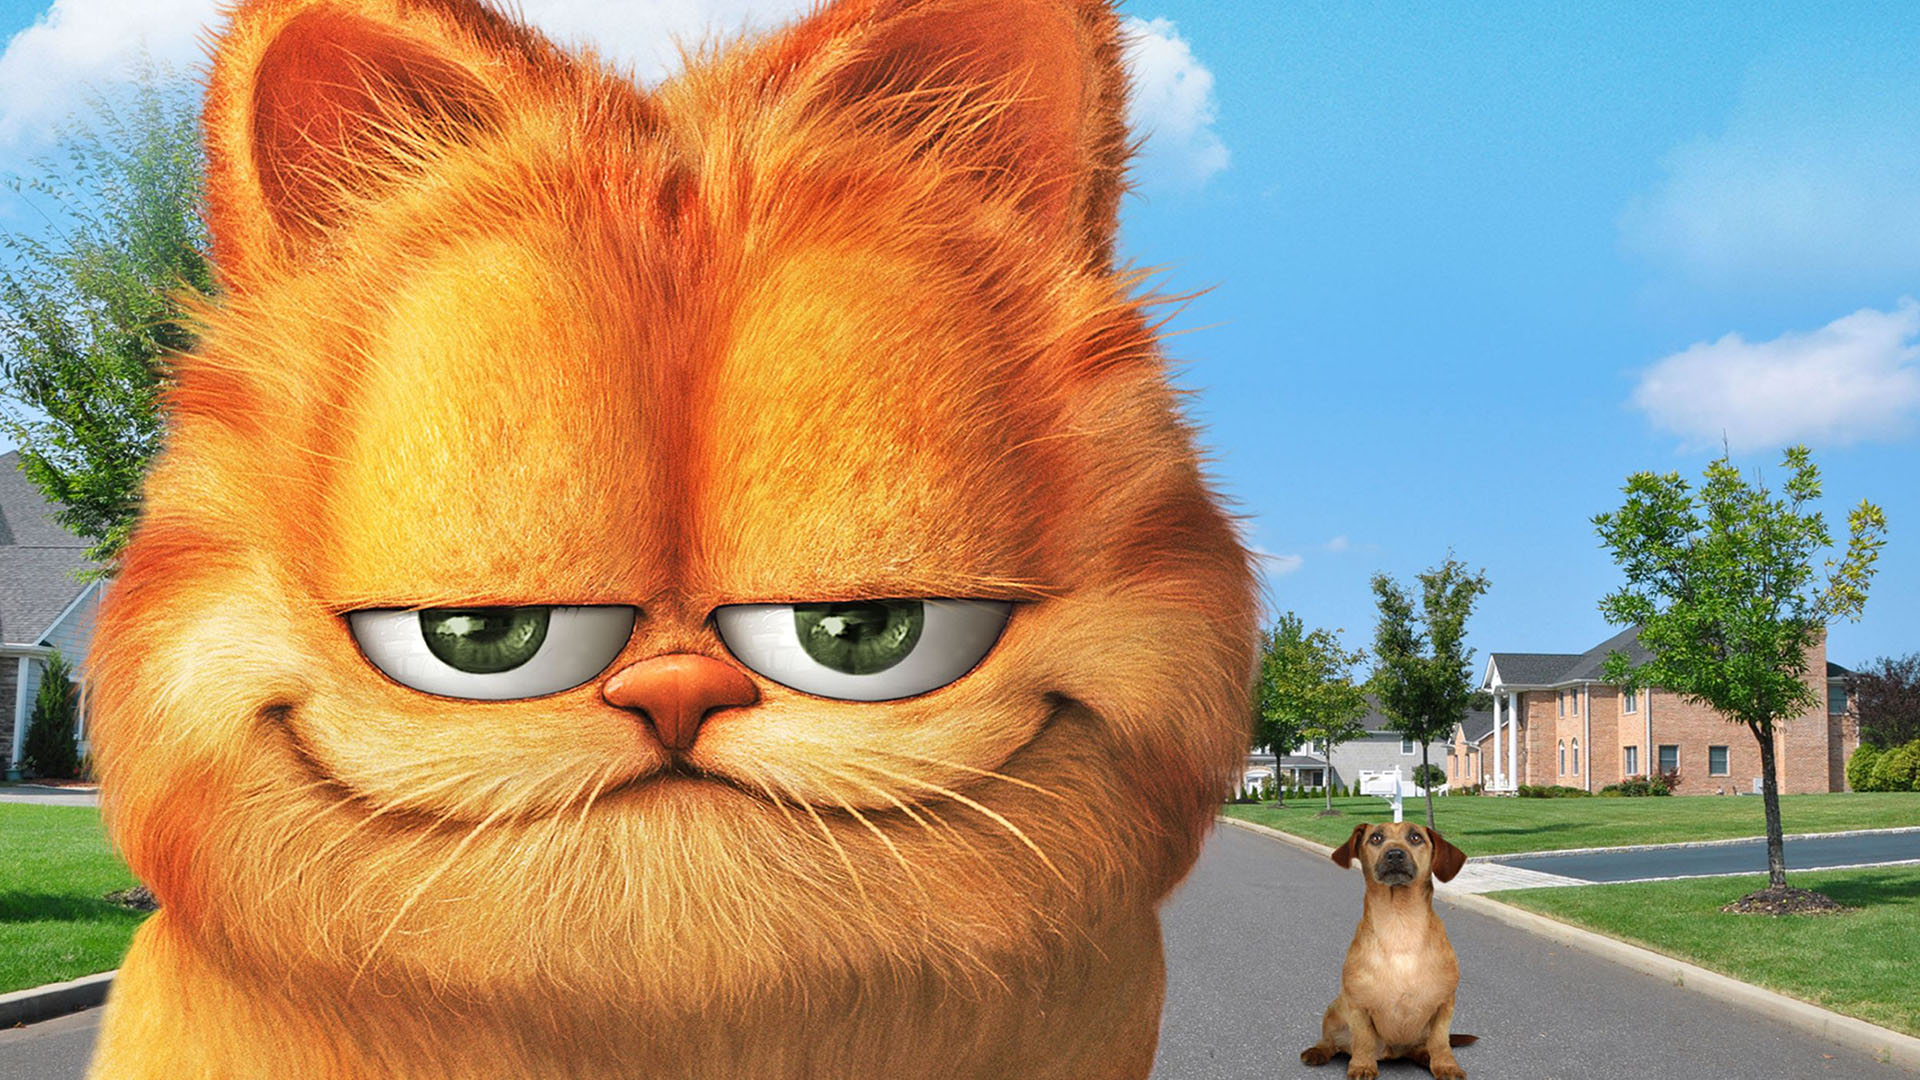 new games about Garfield for Android